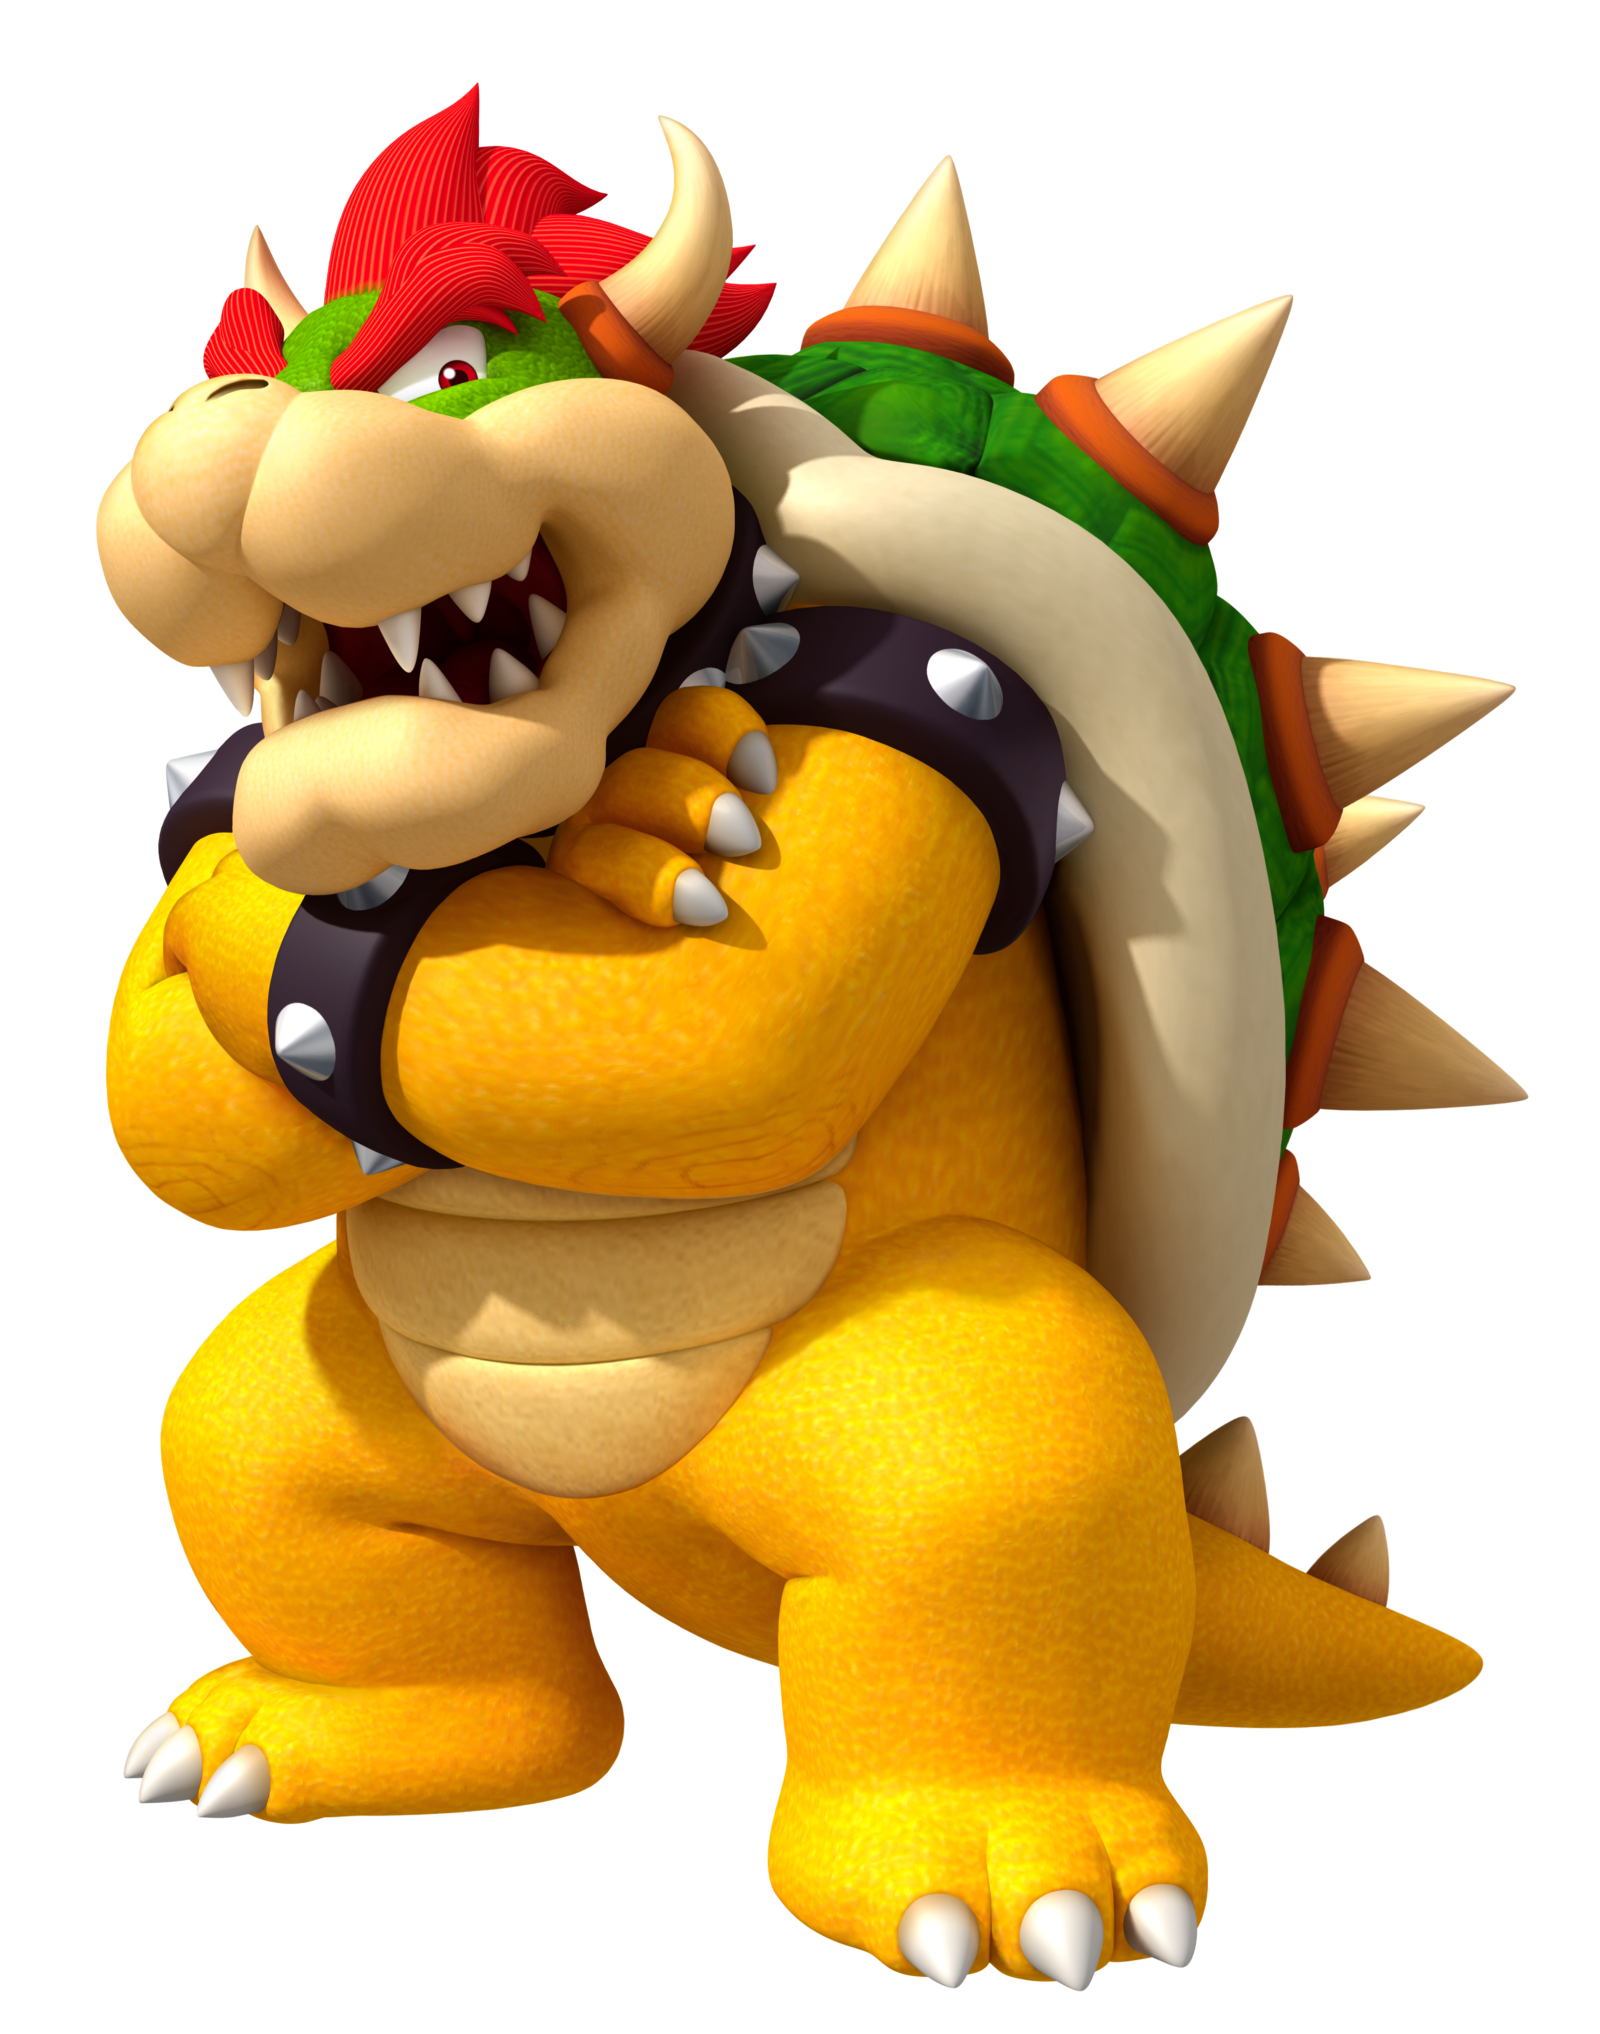 「Bowser」の画像検索結果